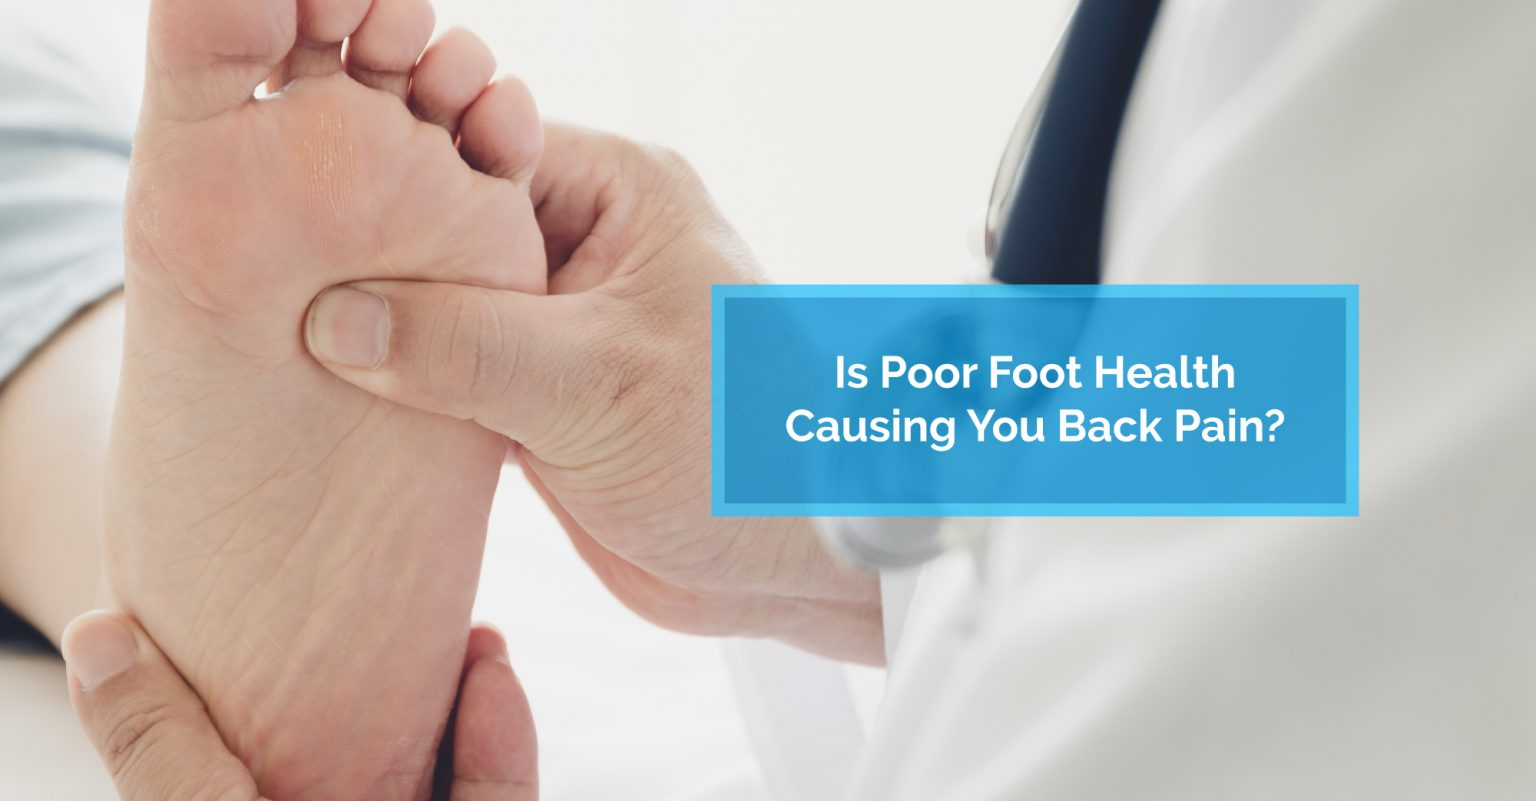 poor foot health and back pain